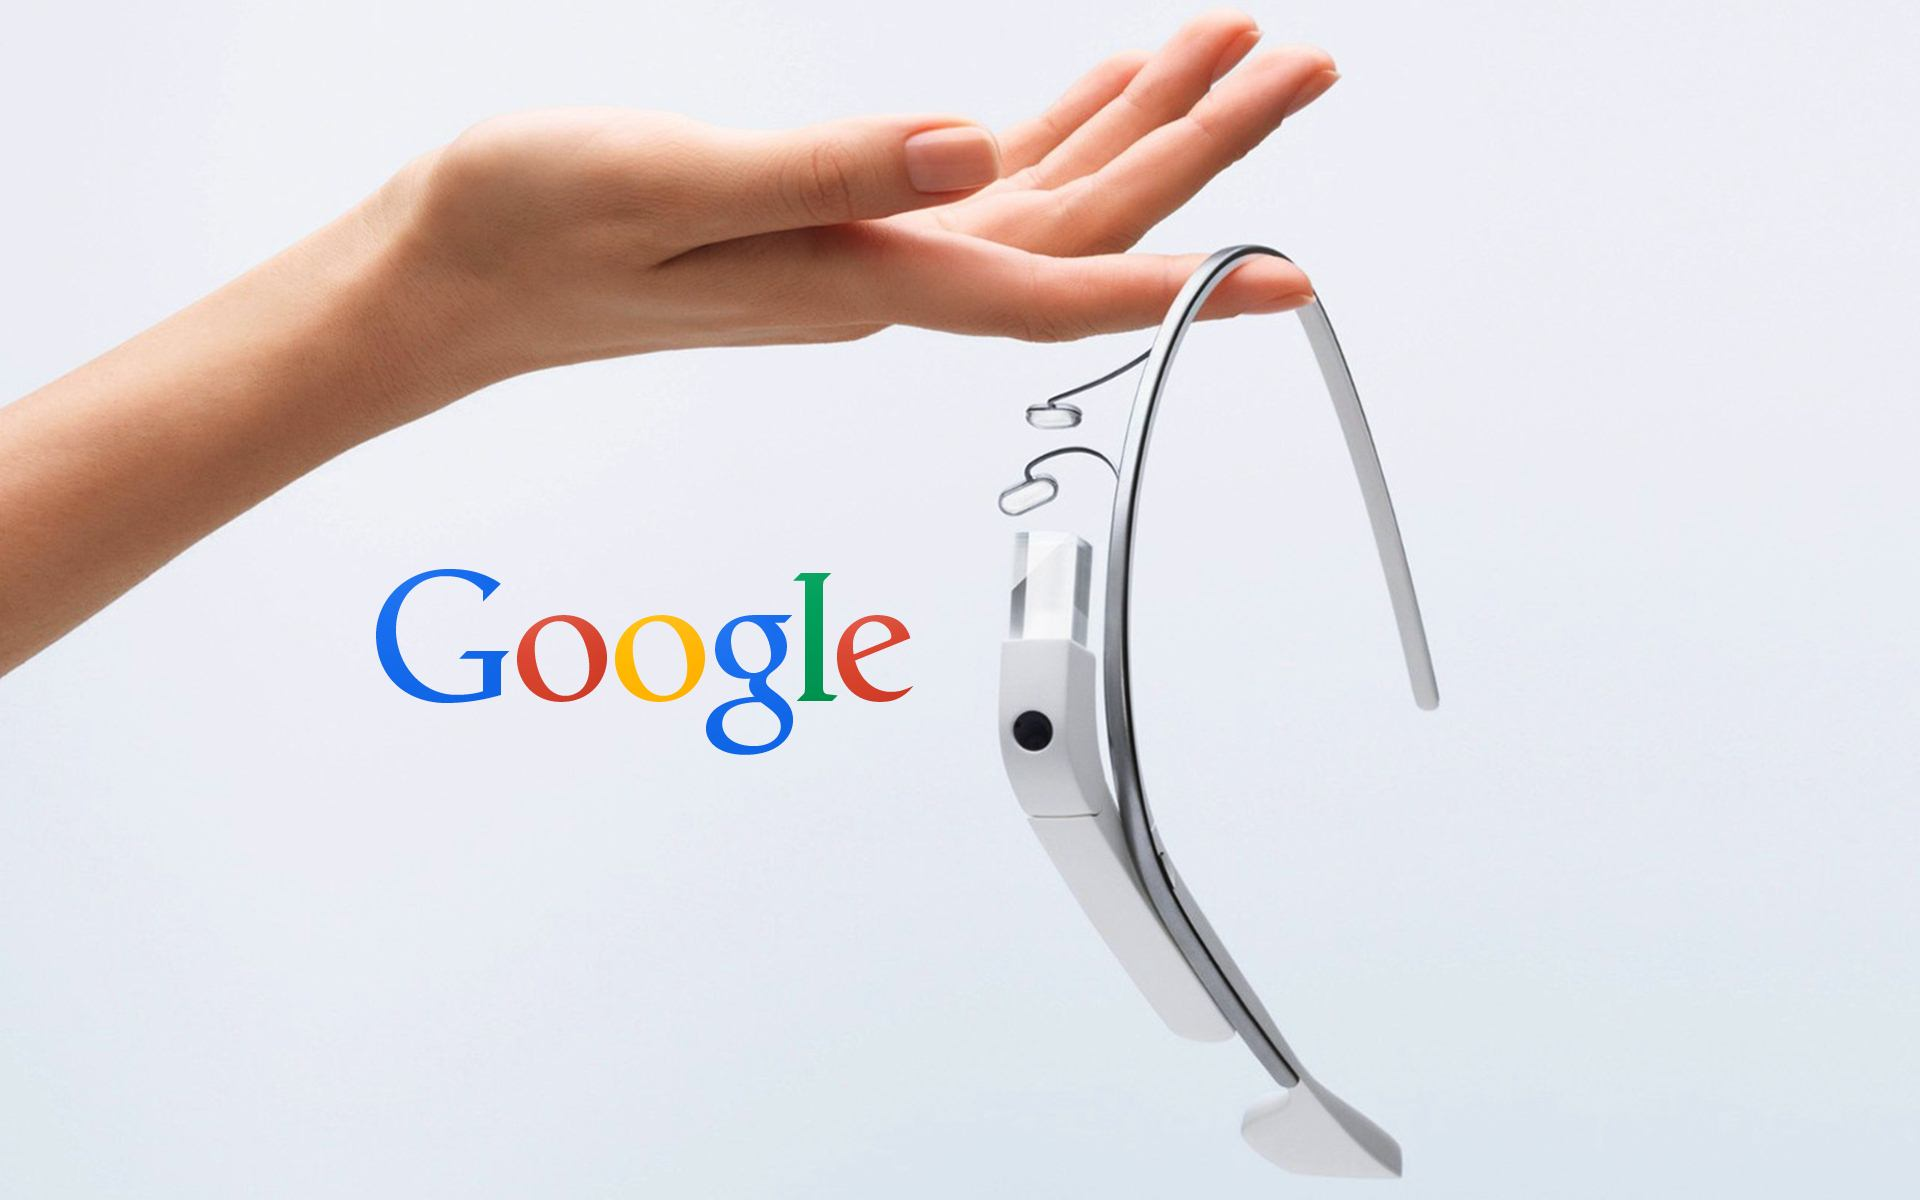 Google Glass Explorer Edition arriva al capolinea con quest'